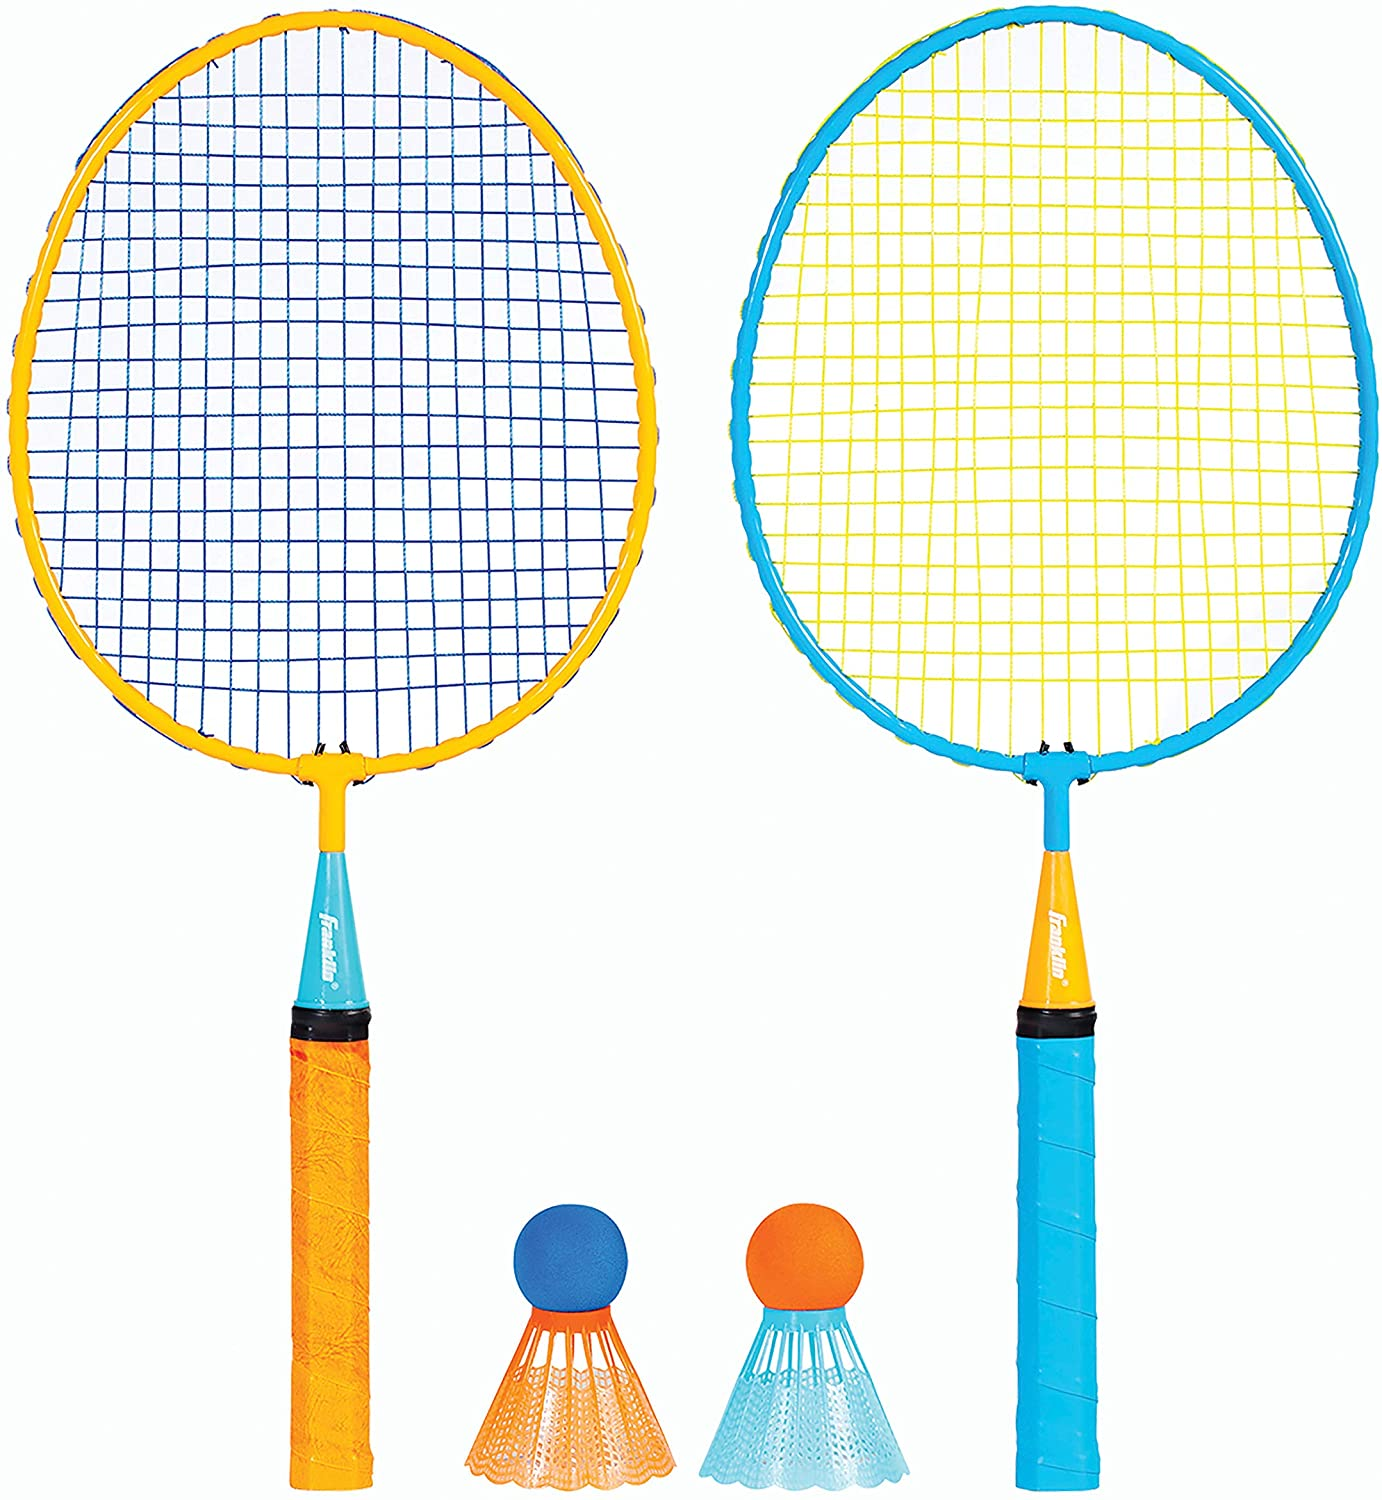 Franklin Sports Kids Badminton Set - Smashminton Set - 2 Player Youth Combo Set with Birdies : General Sporting Equipment : Sports & Outdoors